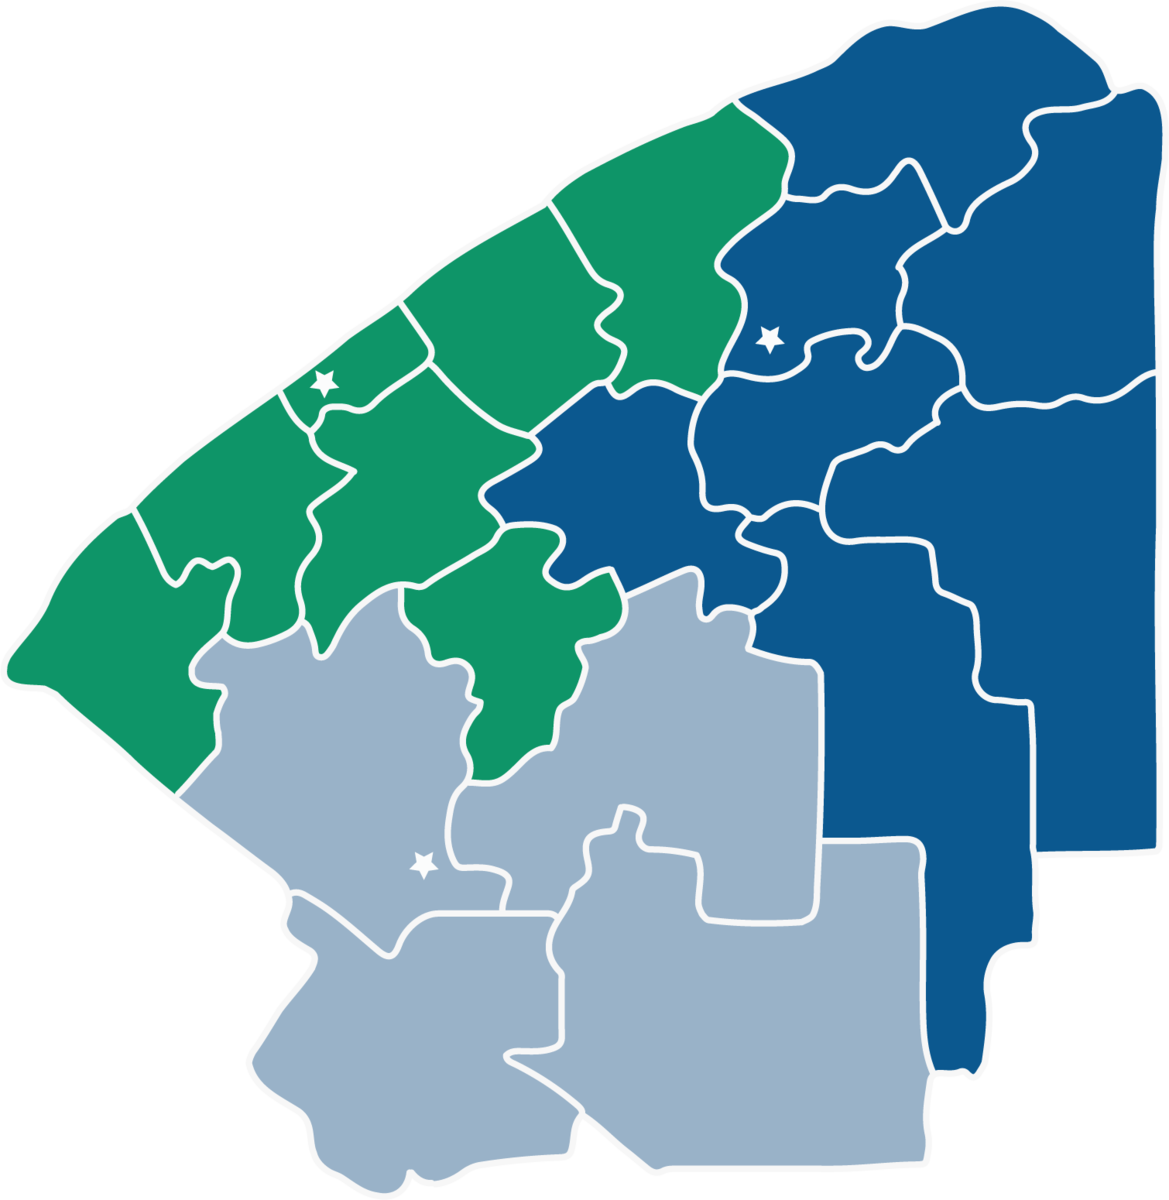 map of St. Lawrence county divided by school district